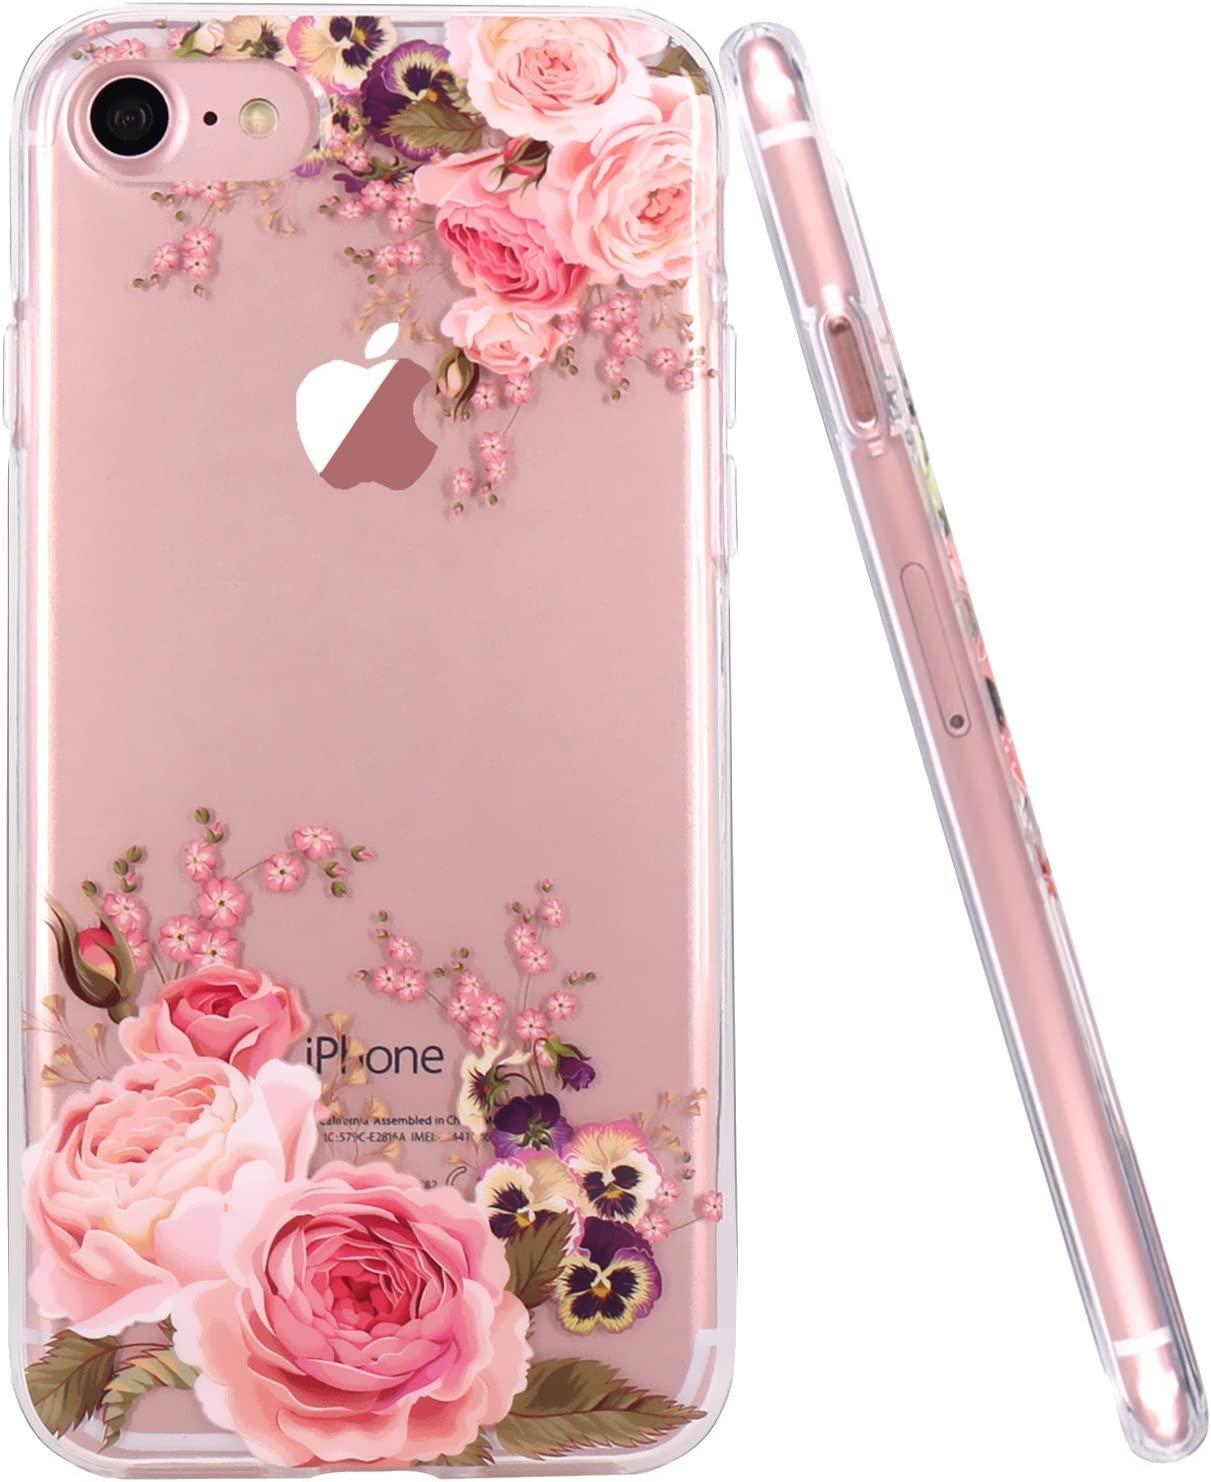 JAHOLAN Cute Girl Floral Design Clear TPU Soft Slim Flexible Silicone Cover Phone Case Compatible with iPhone 7 iPhone 8 - Rose Flower